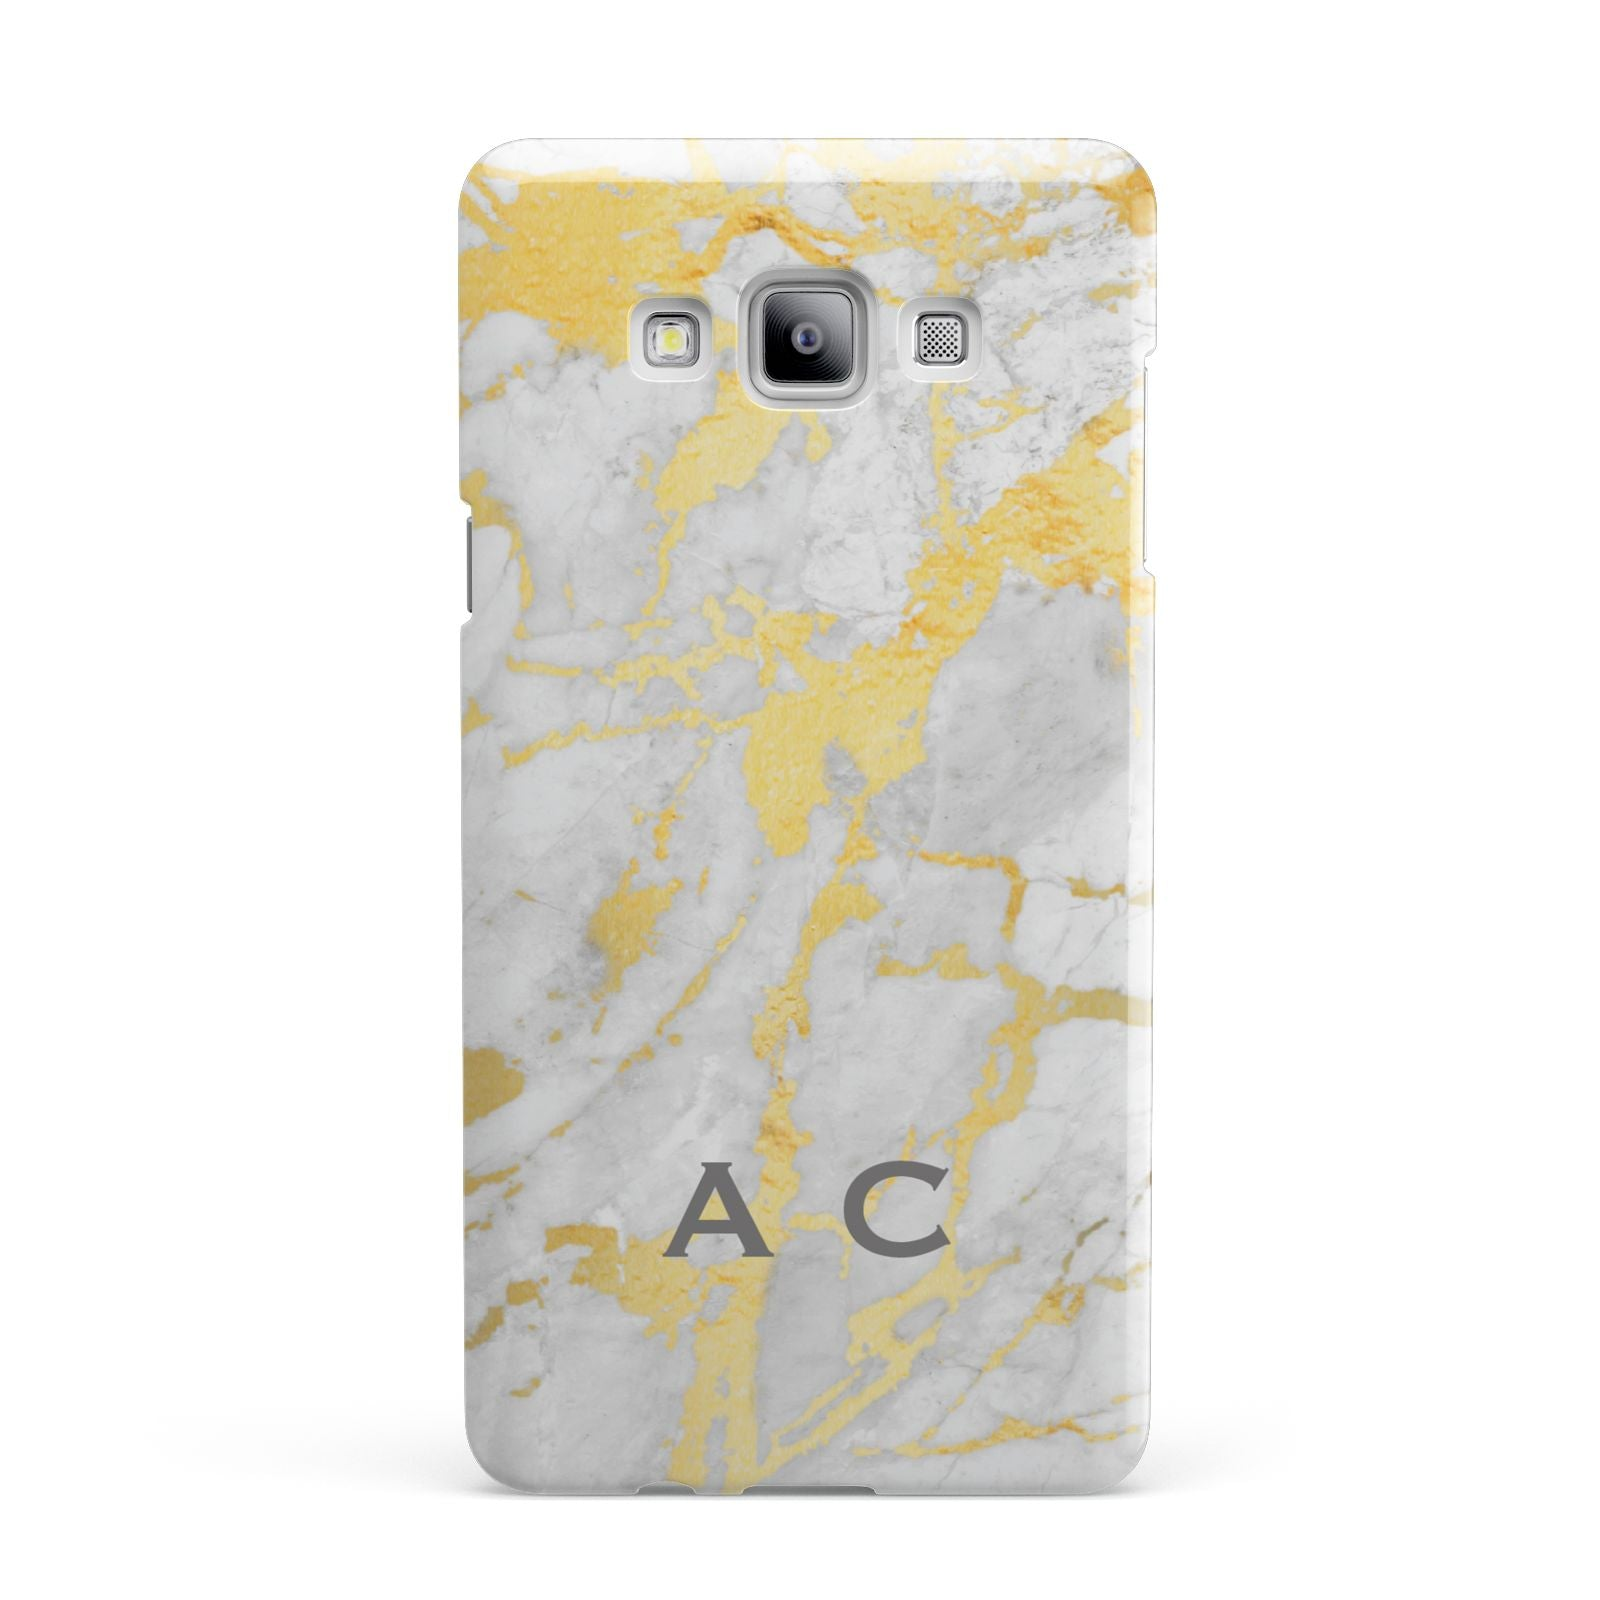 Gold Marble Initials Personalised Samsung Galaxy A7 2015 Case